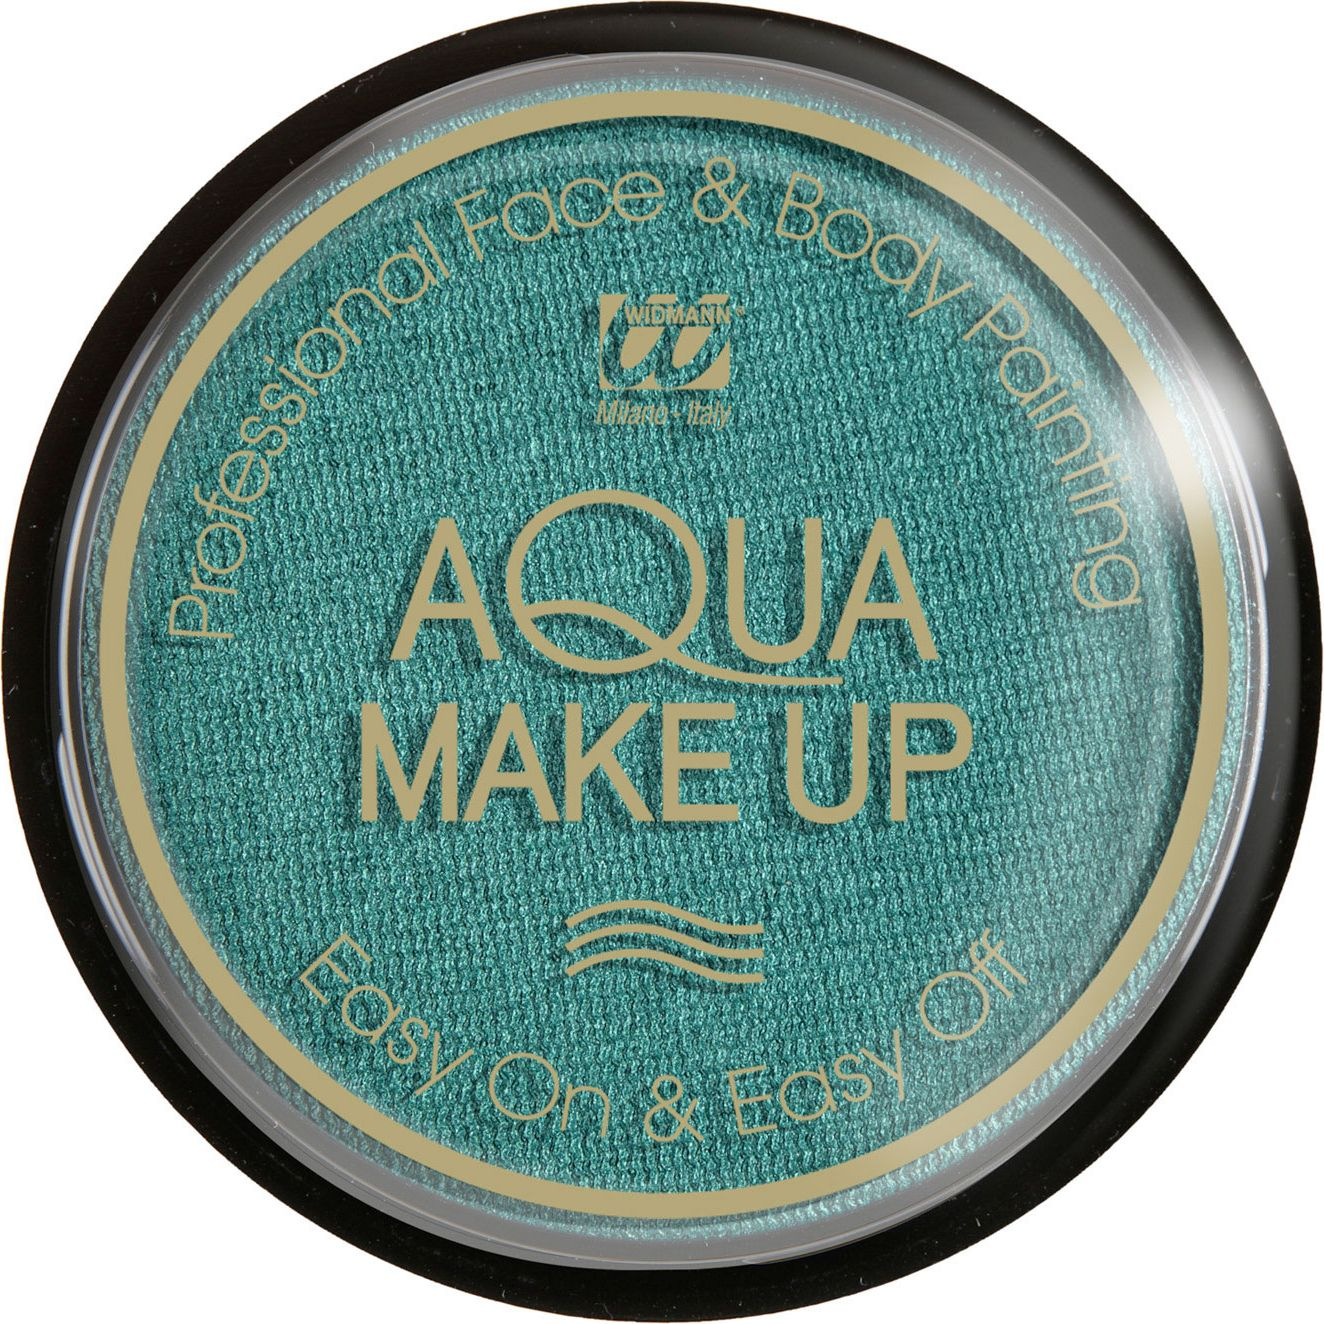 Groene waterbasis make-up metallic